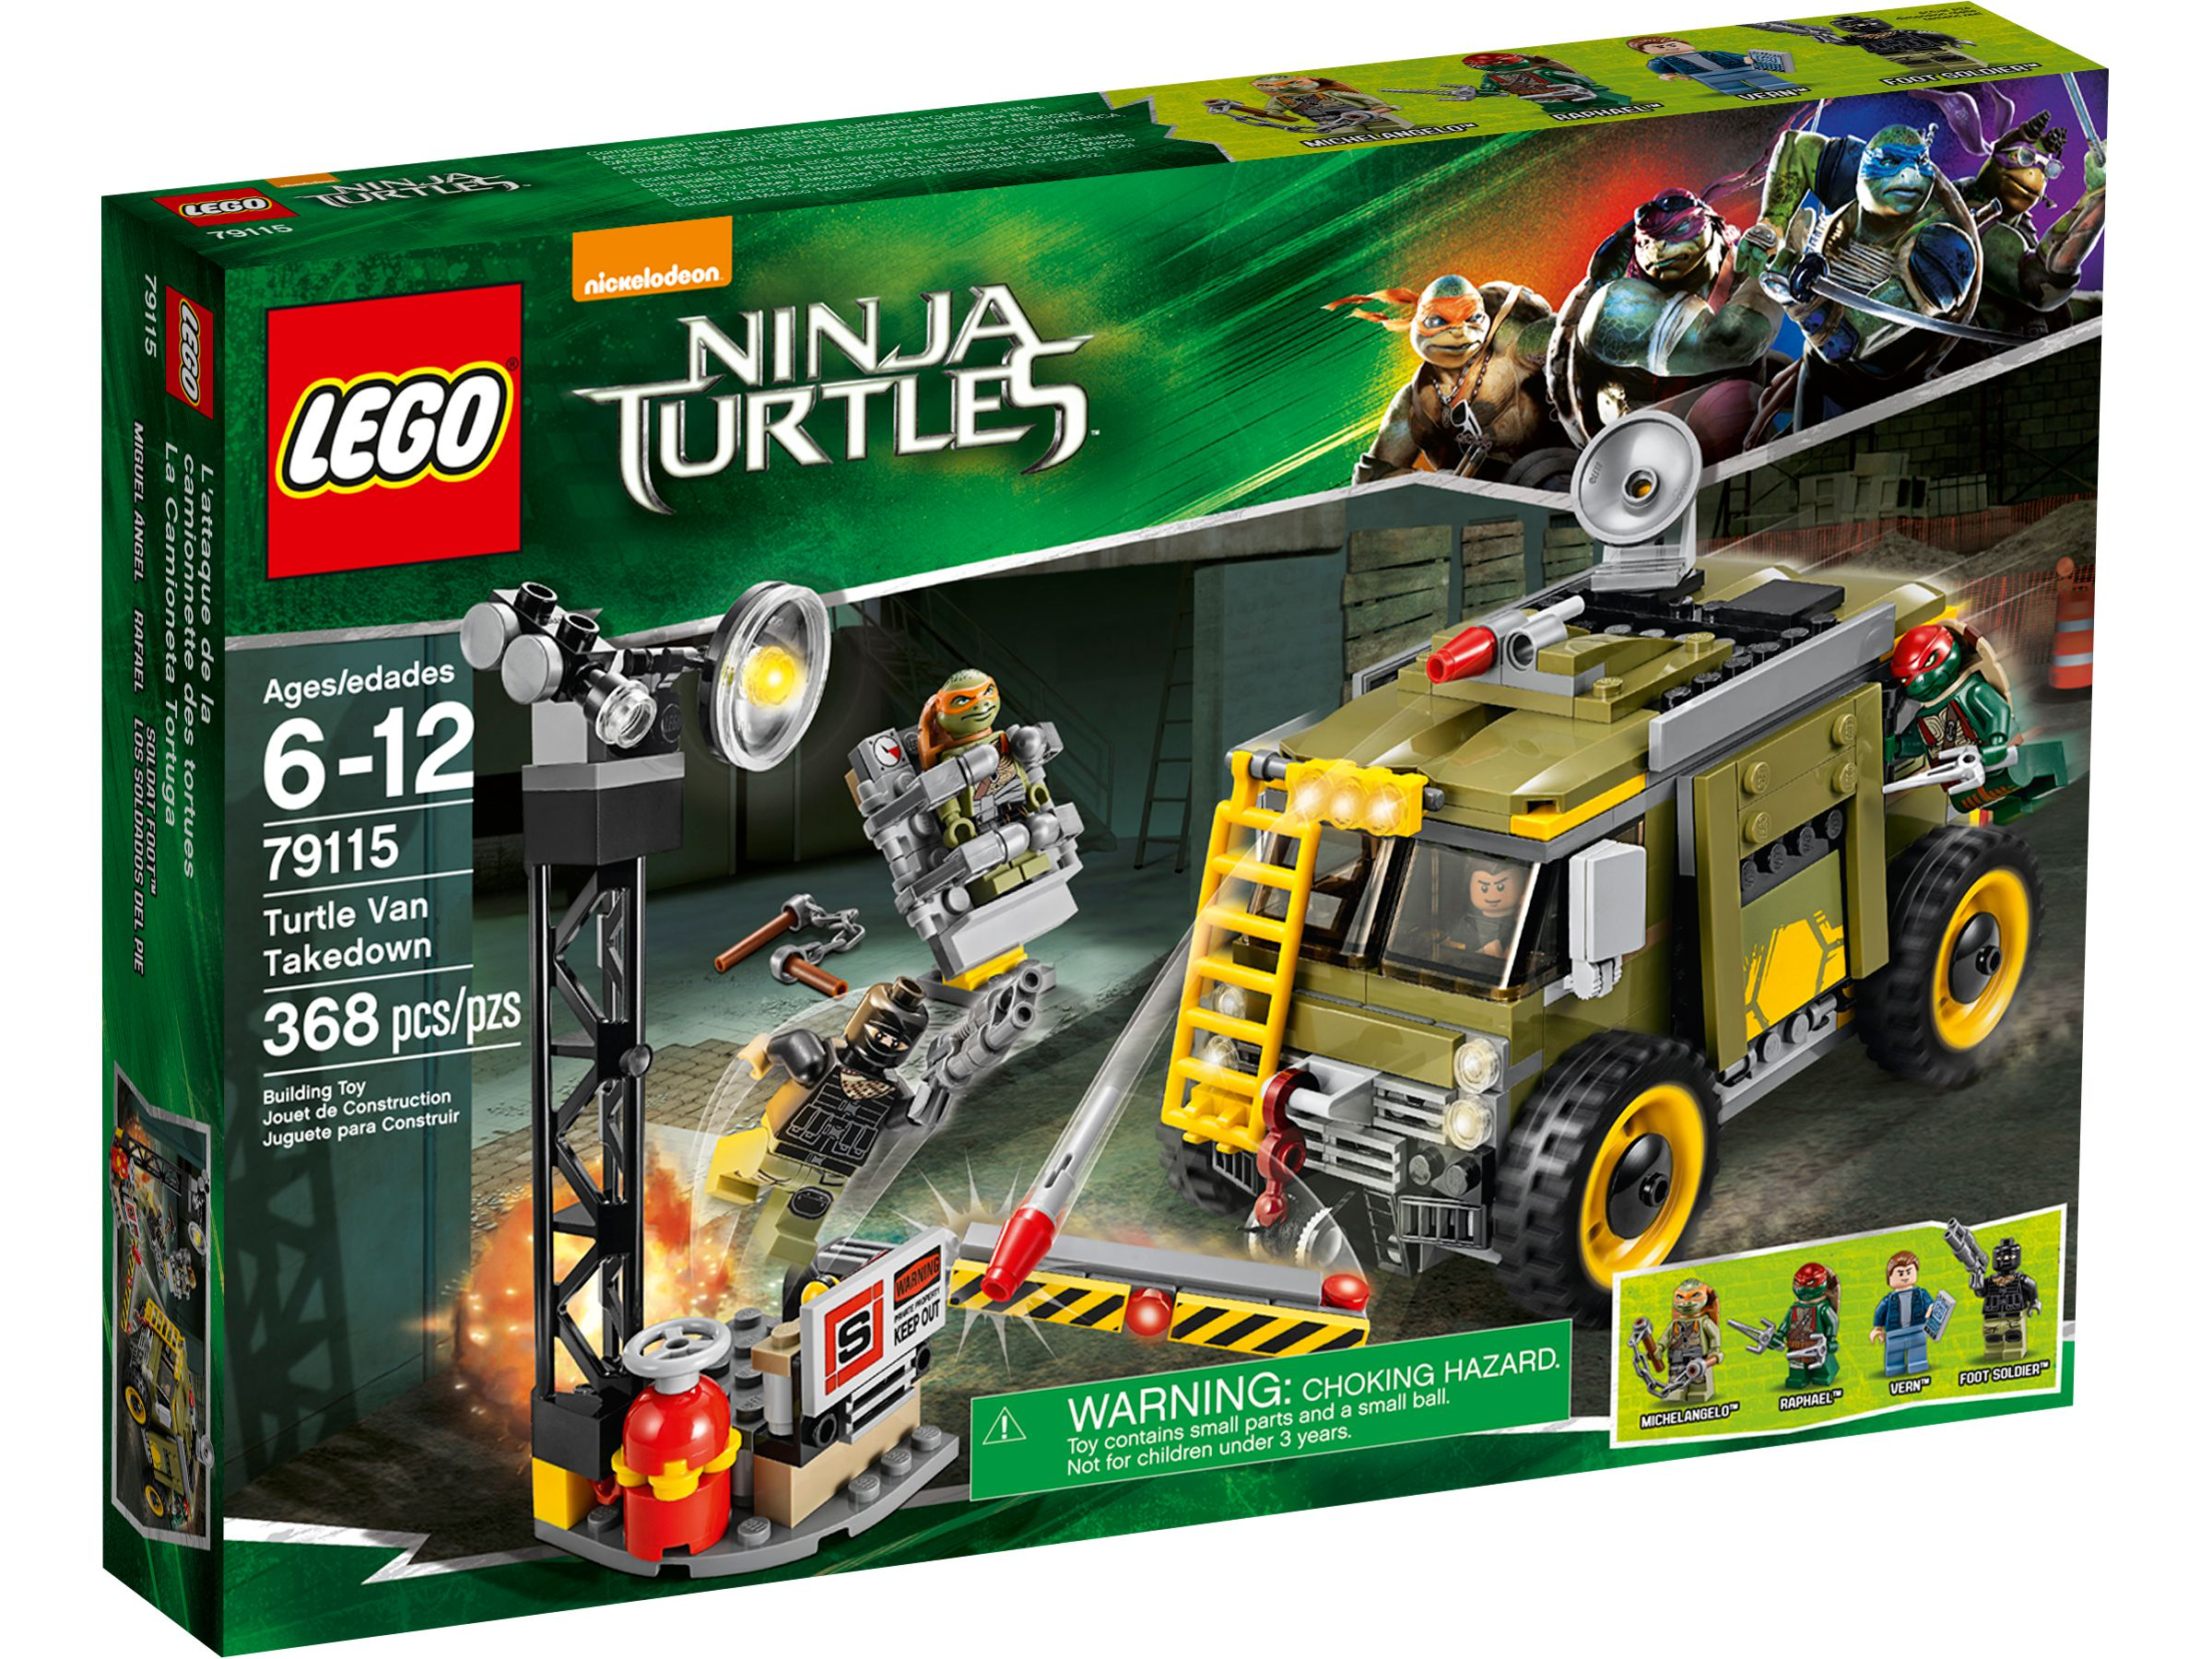 LEGO Teenage Mutant Ninja Turtles 79115 Turtle Van LEGO_79115_alt1.jpg